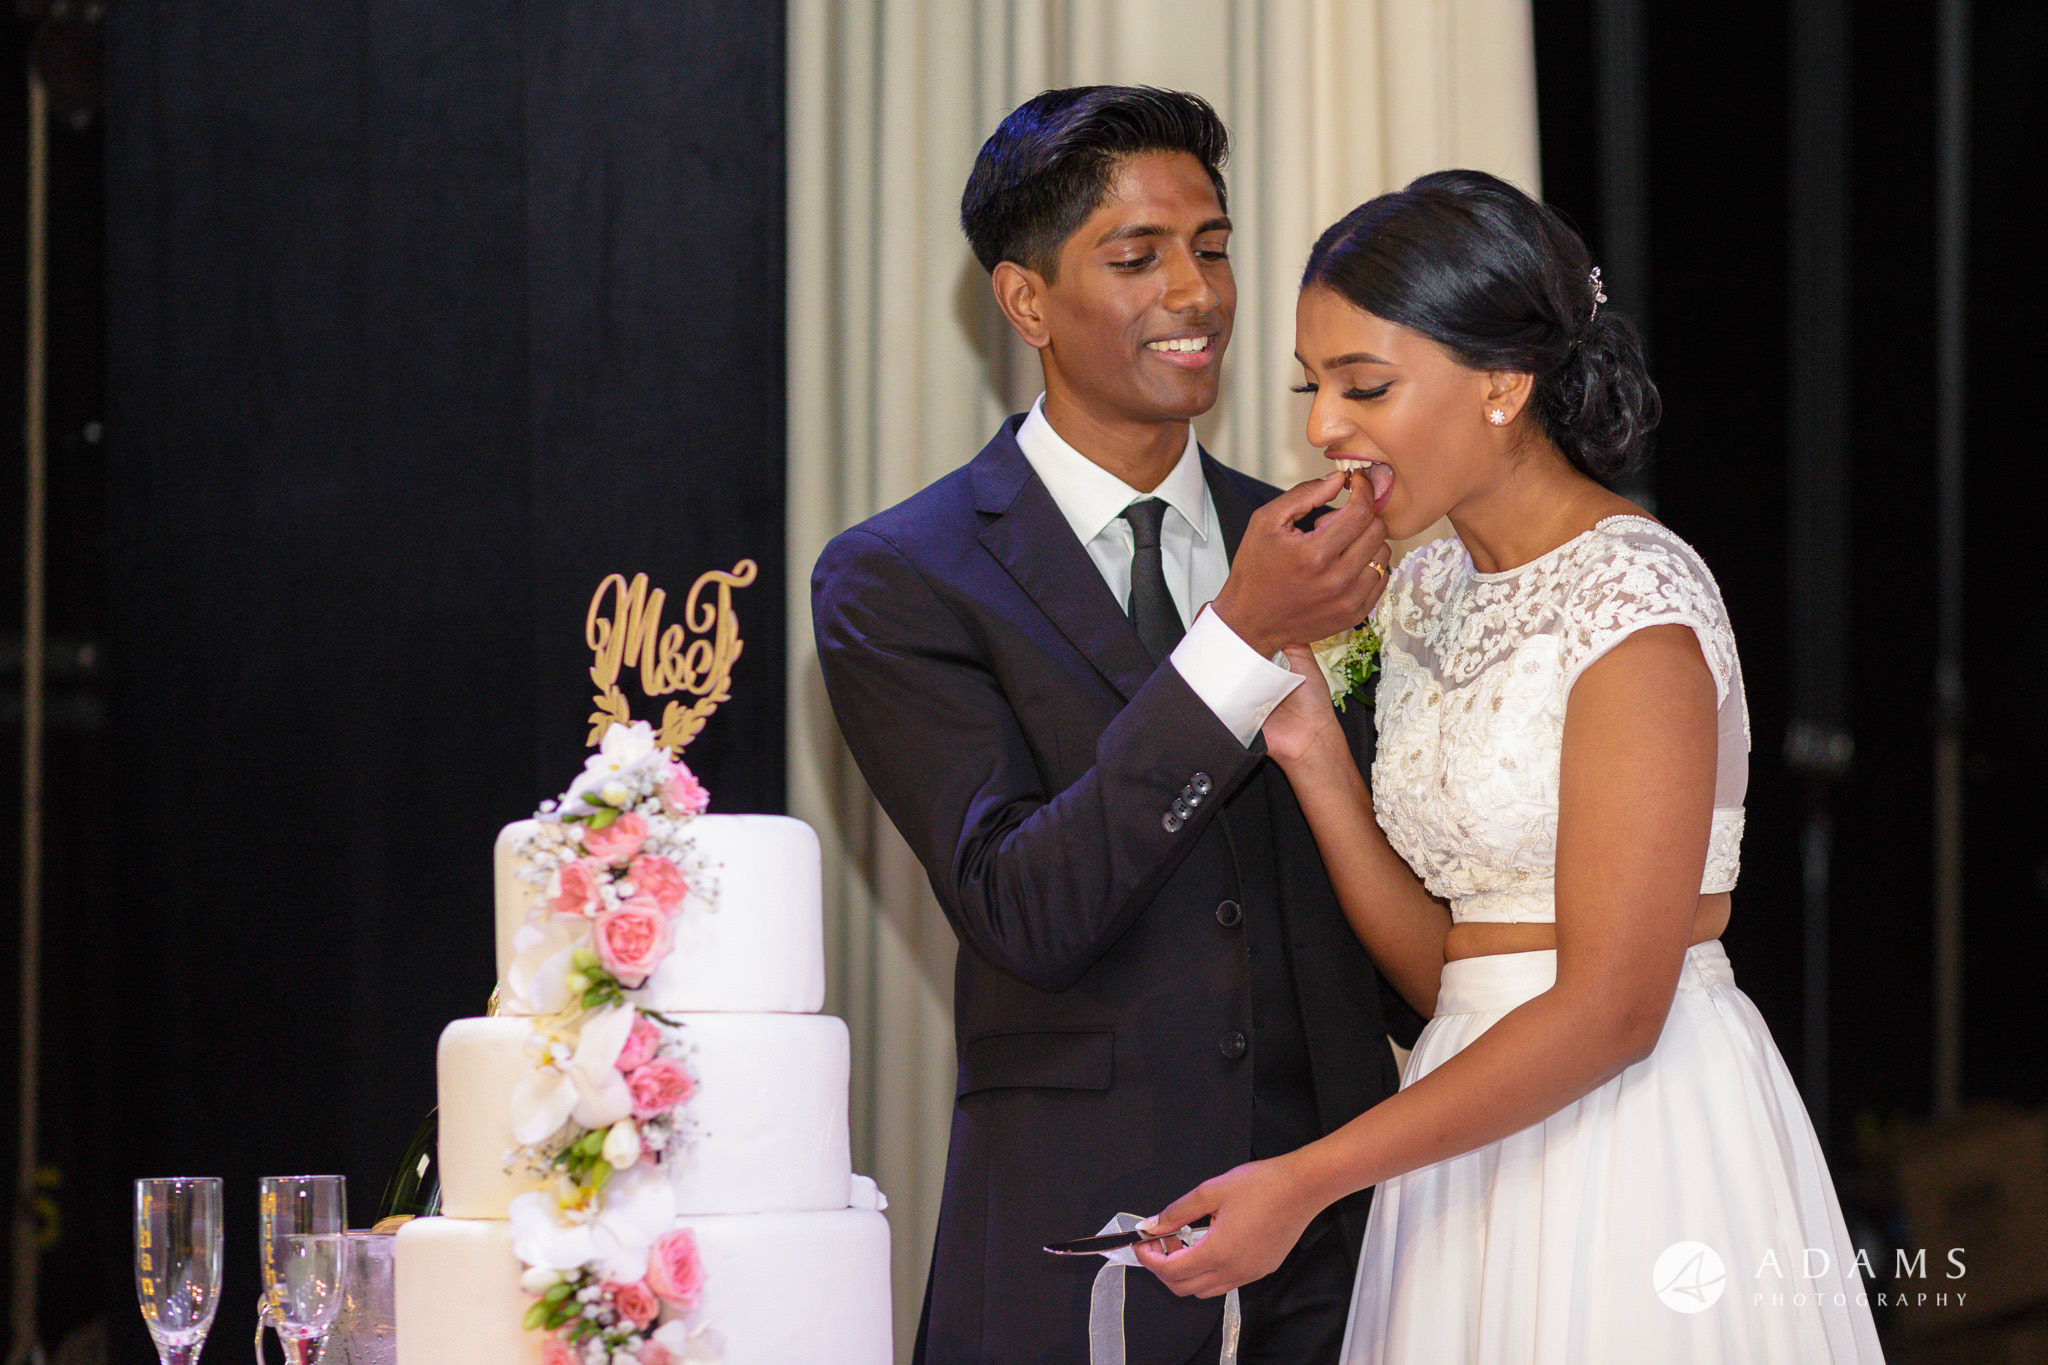 Norway Tamil Wedding couple cut the cake